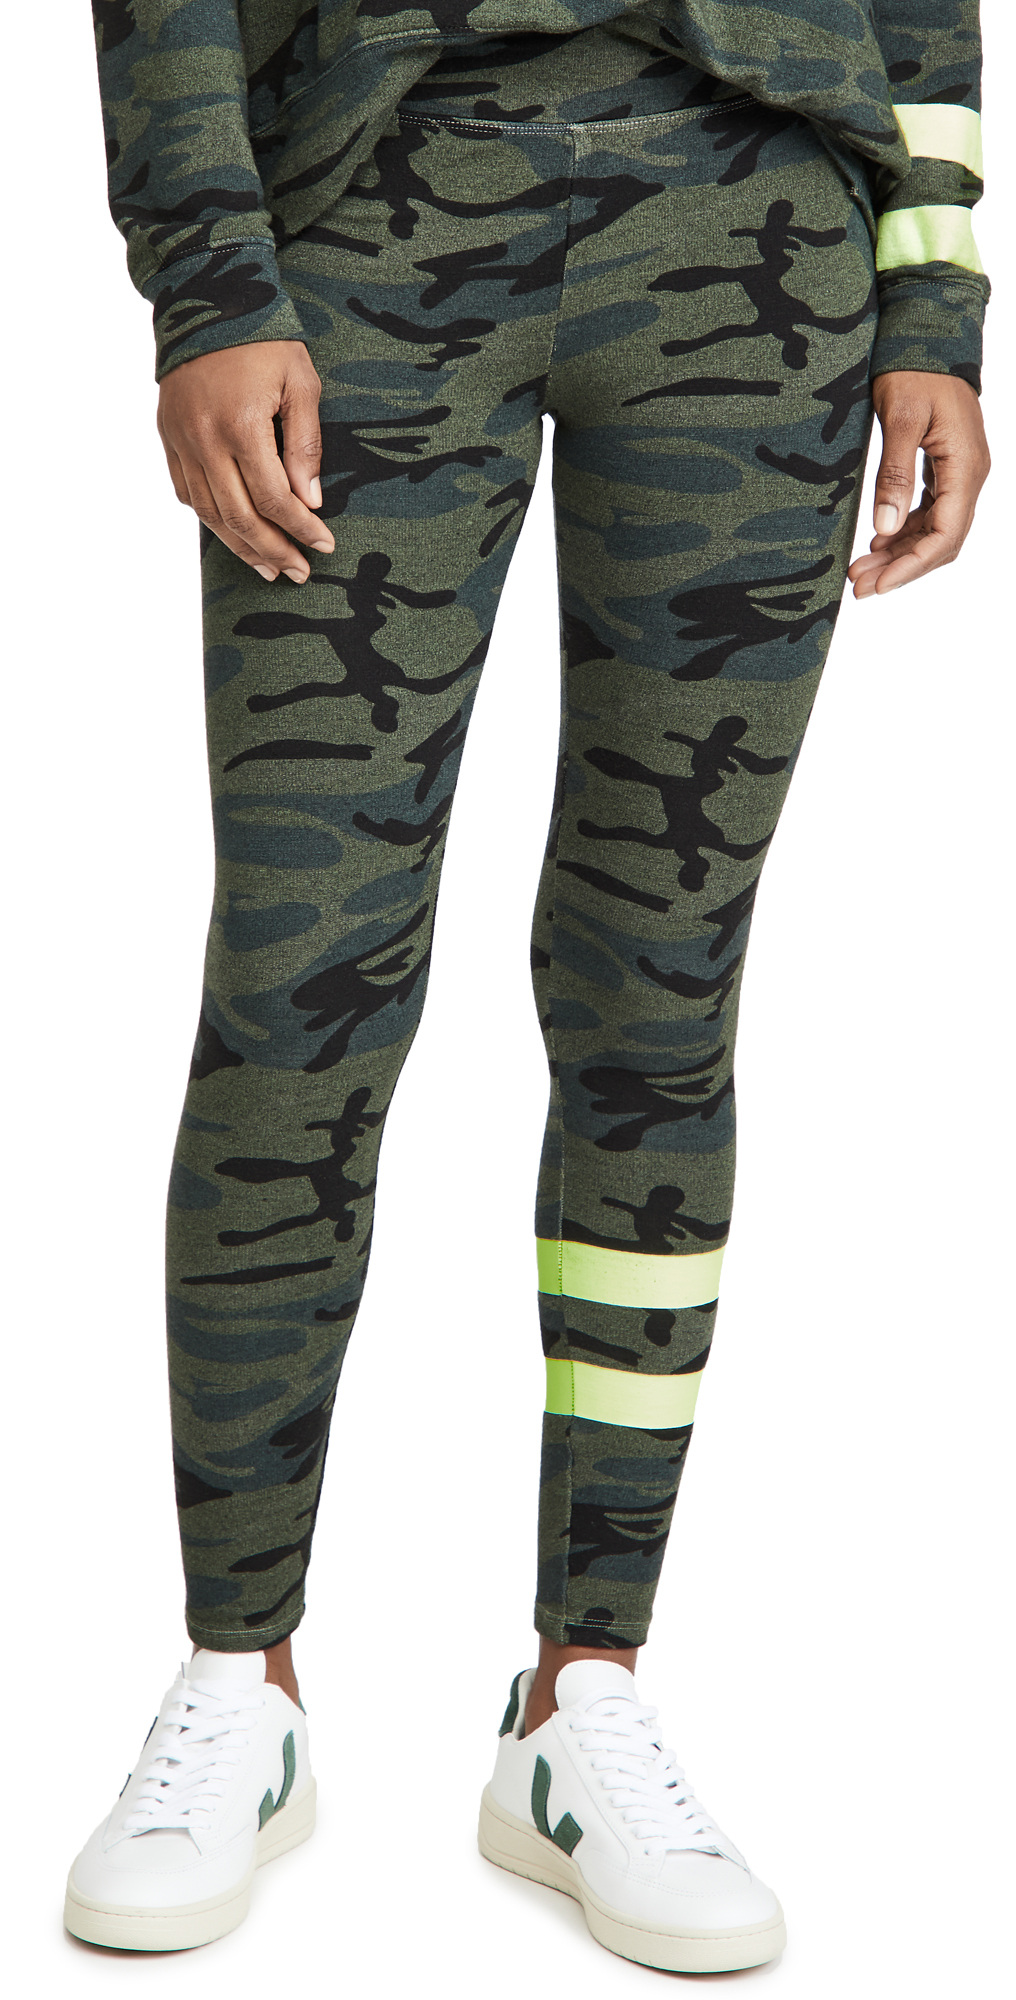 SUNDRY Stripe Camo Yoga Pants